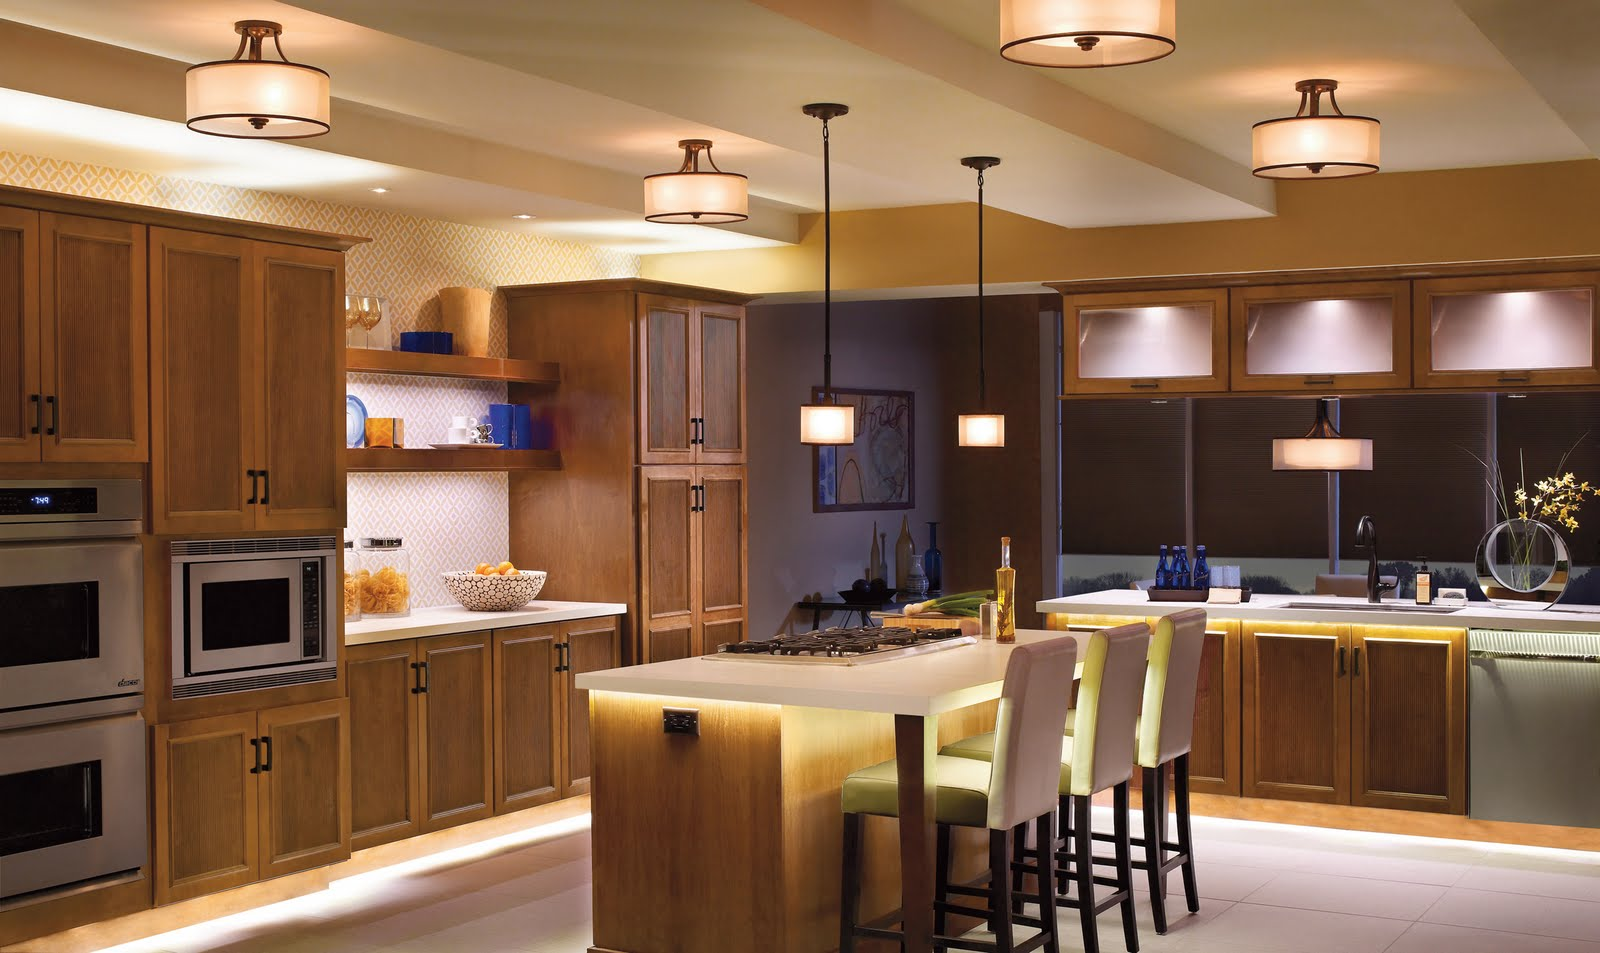 lighting in a kitchen. Lighting Kitchens. 76 Kitchens In A Kitchen E